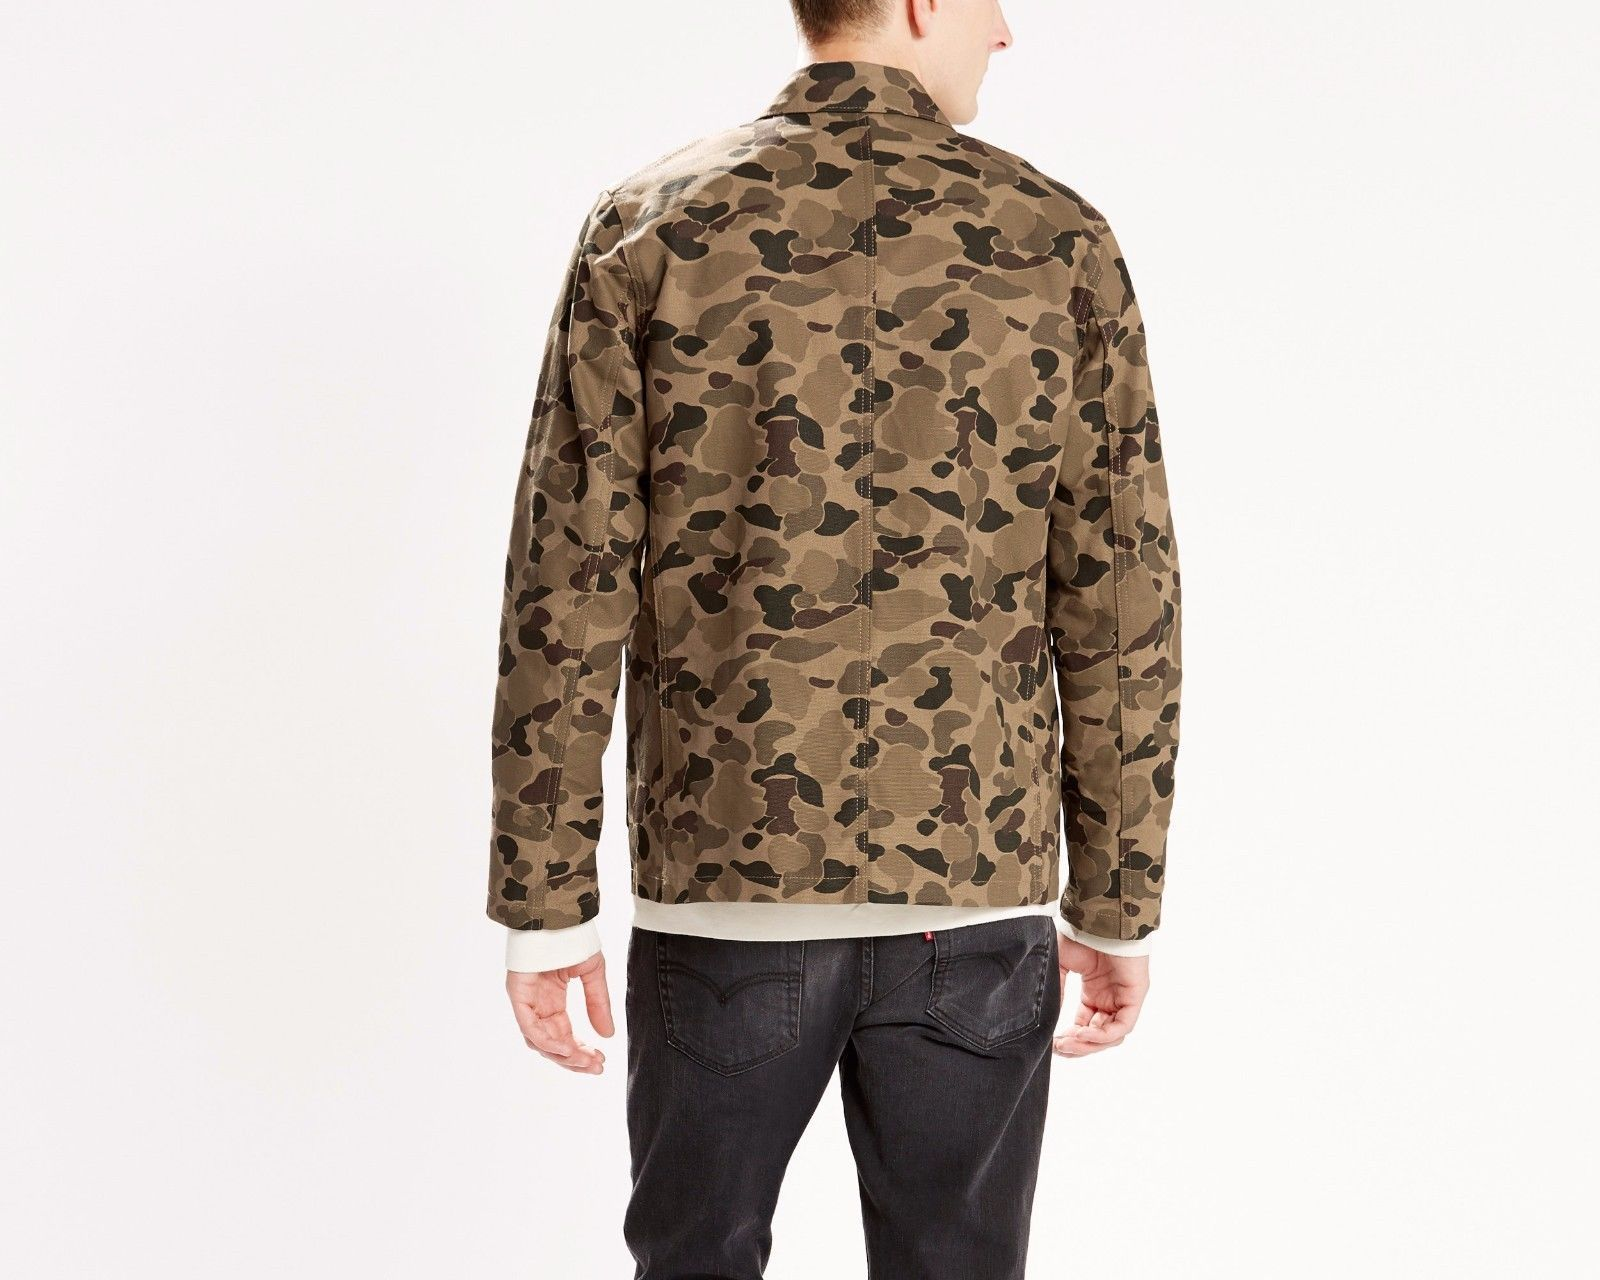 6c33a9a3 NWT LEVI's ENGINEER COAT Harvest Gold Camo JACKET Mens M Cotton Canvas MSRP  $88 in Clothing, Shoes & Accessories, Men's Clothing, Coats & Jackets | eBay